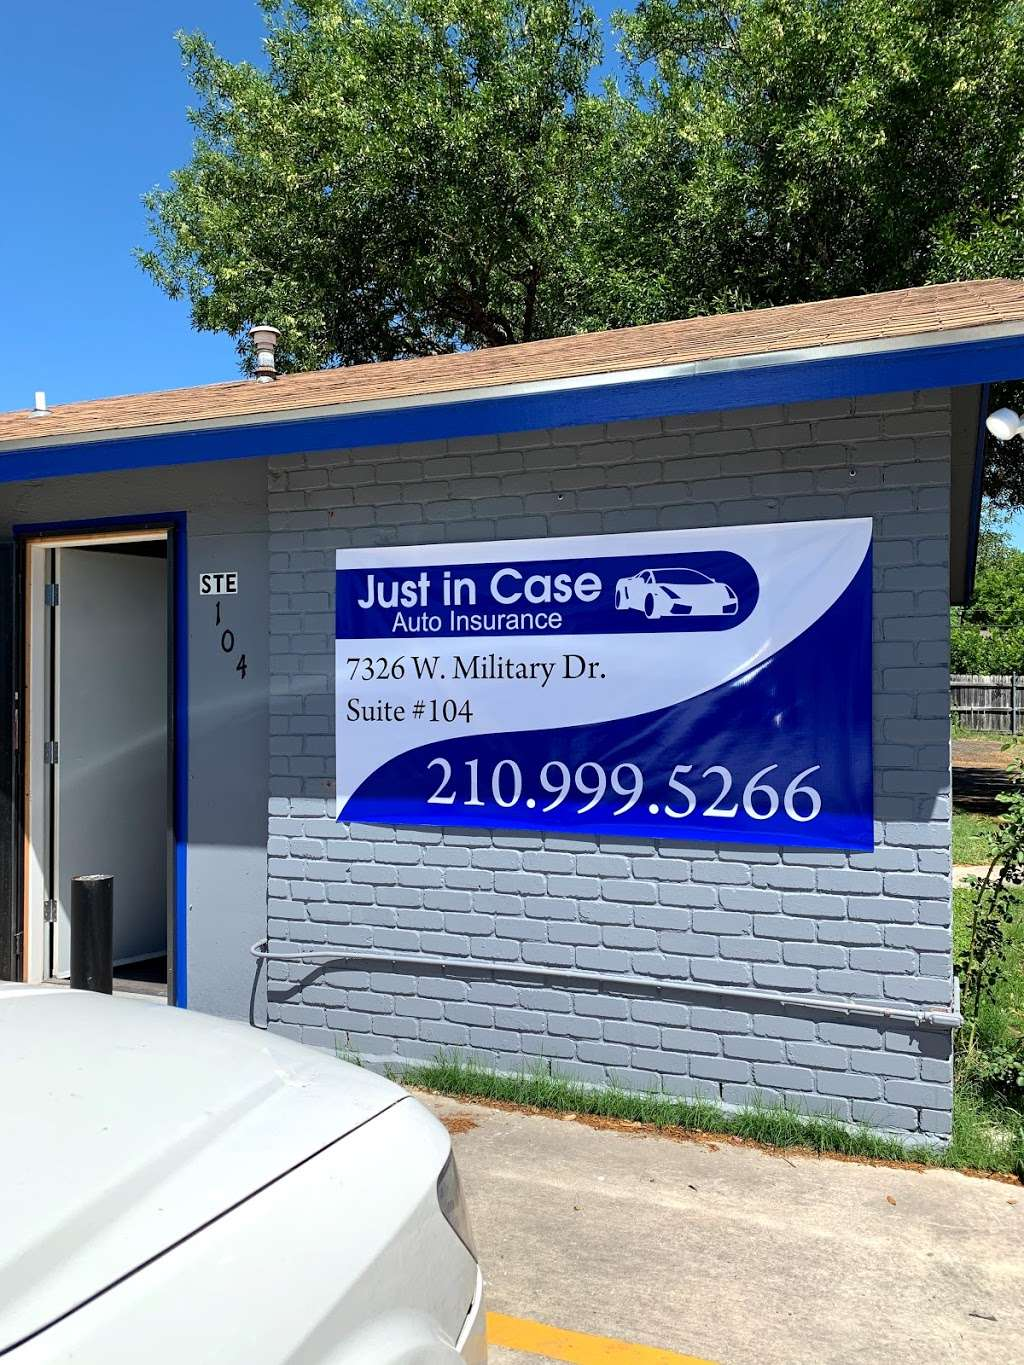 Just in Case Auto Insurance - insurance agency  | Photo 2 of 3 | Address: 7326 W Military Dr Ste104, San Antonio, TX 78227, USA | Phone: (210) 999-5266